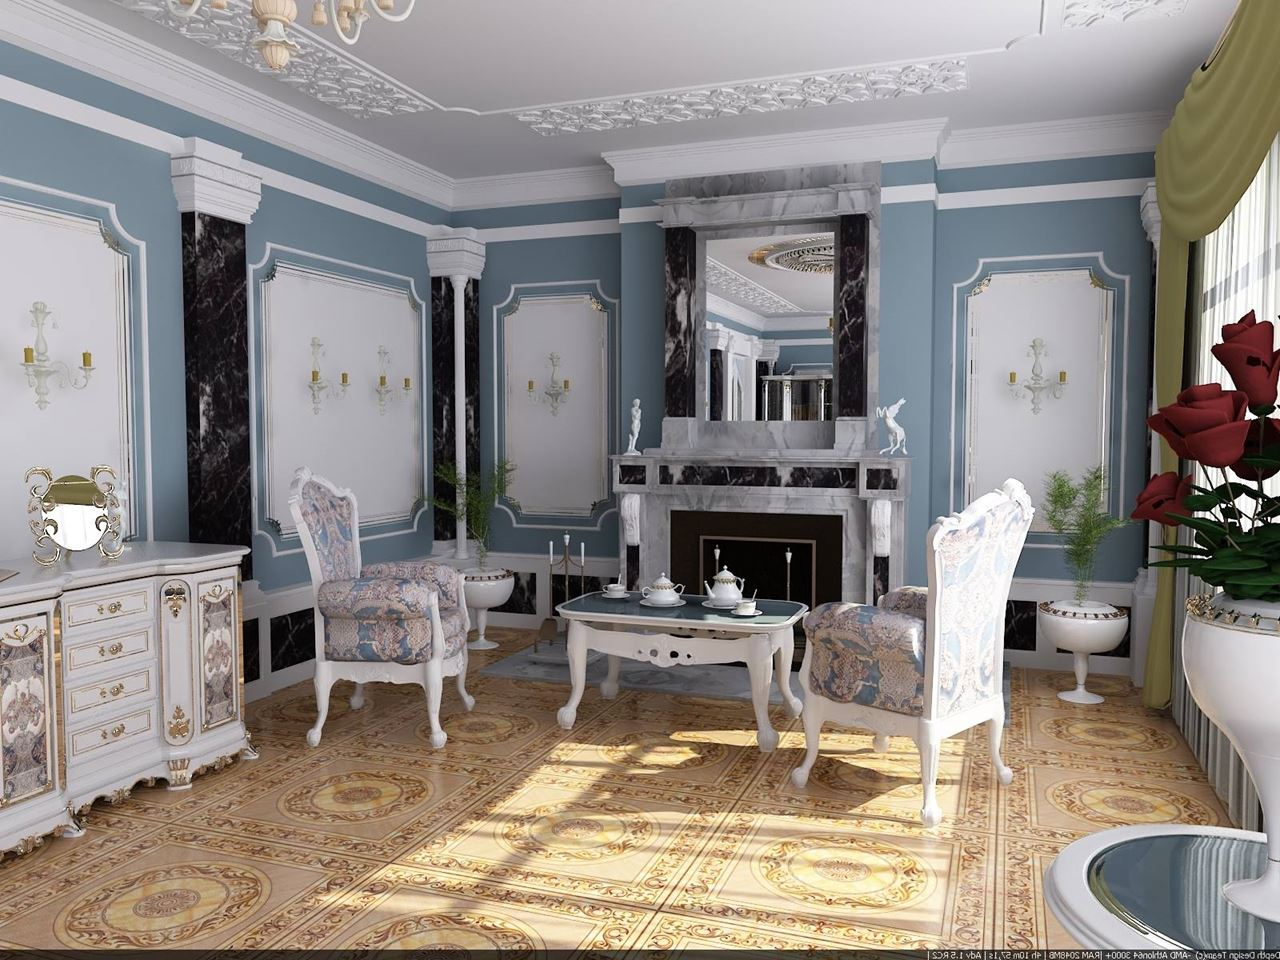 Rococo style interior design ideas - Interior design styles living room ...